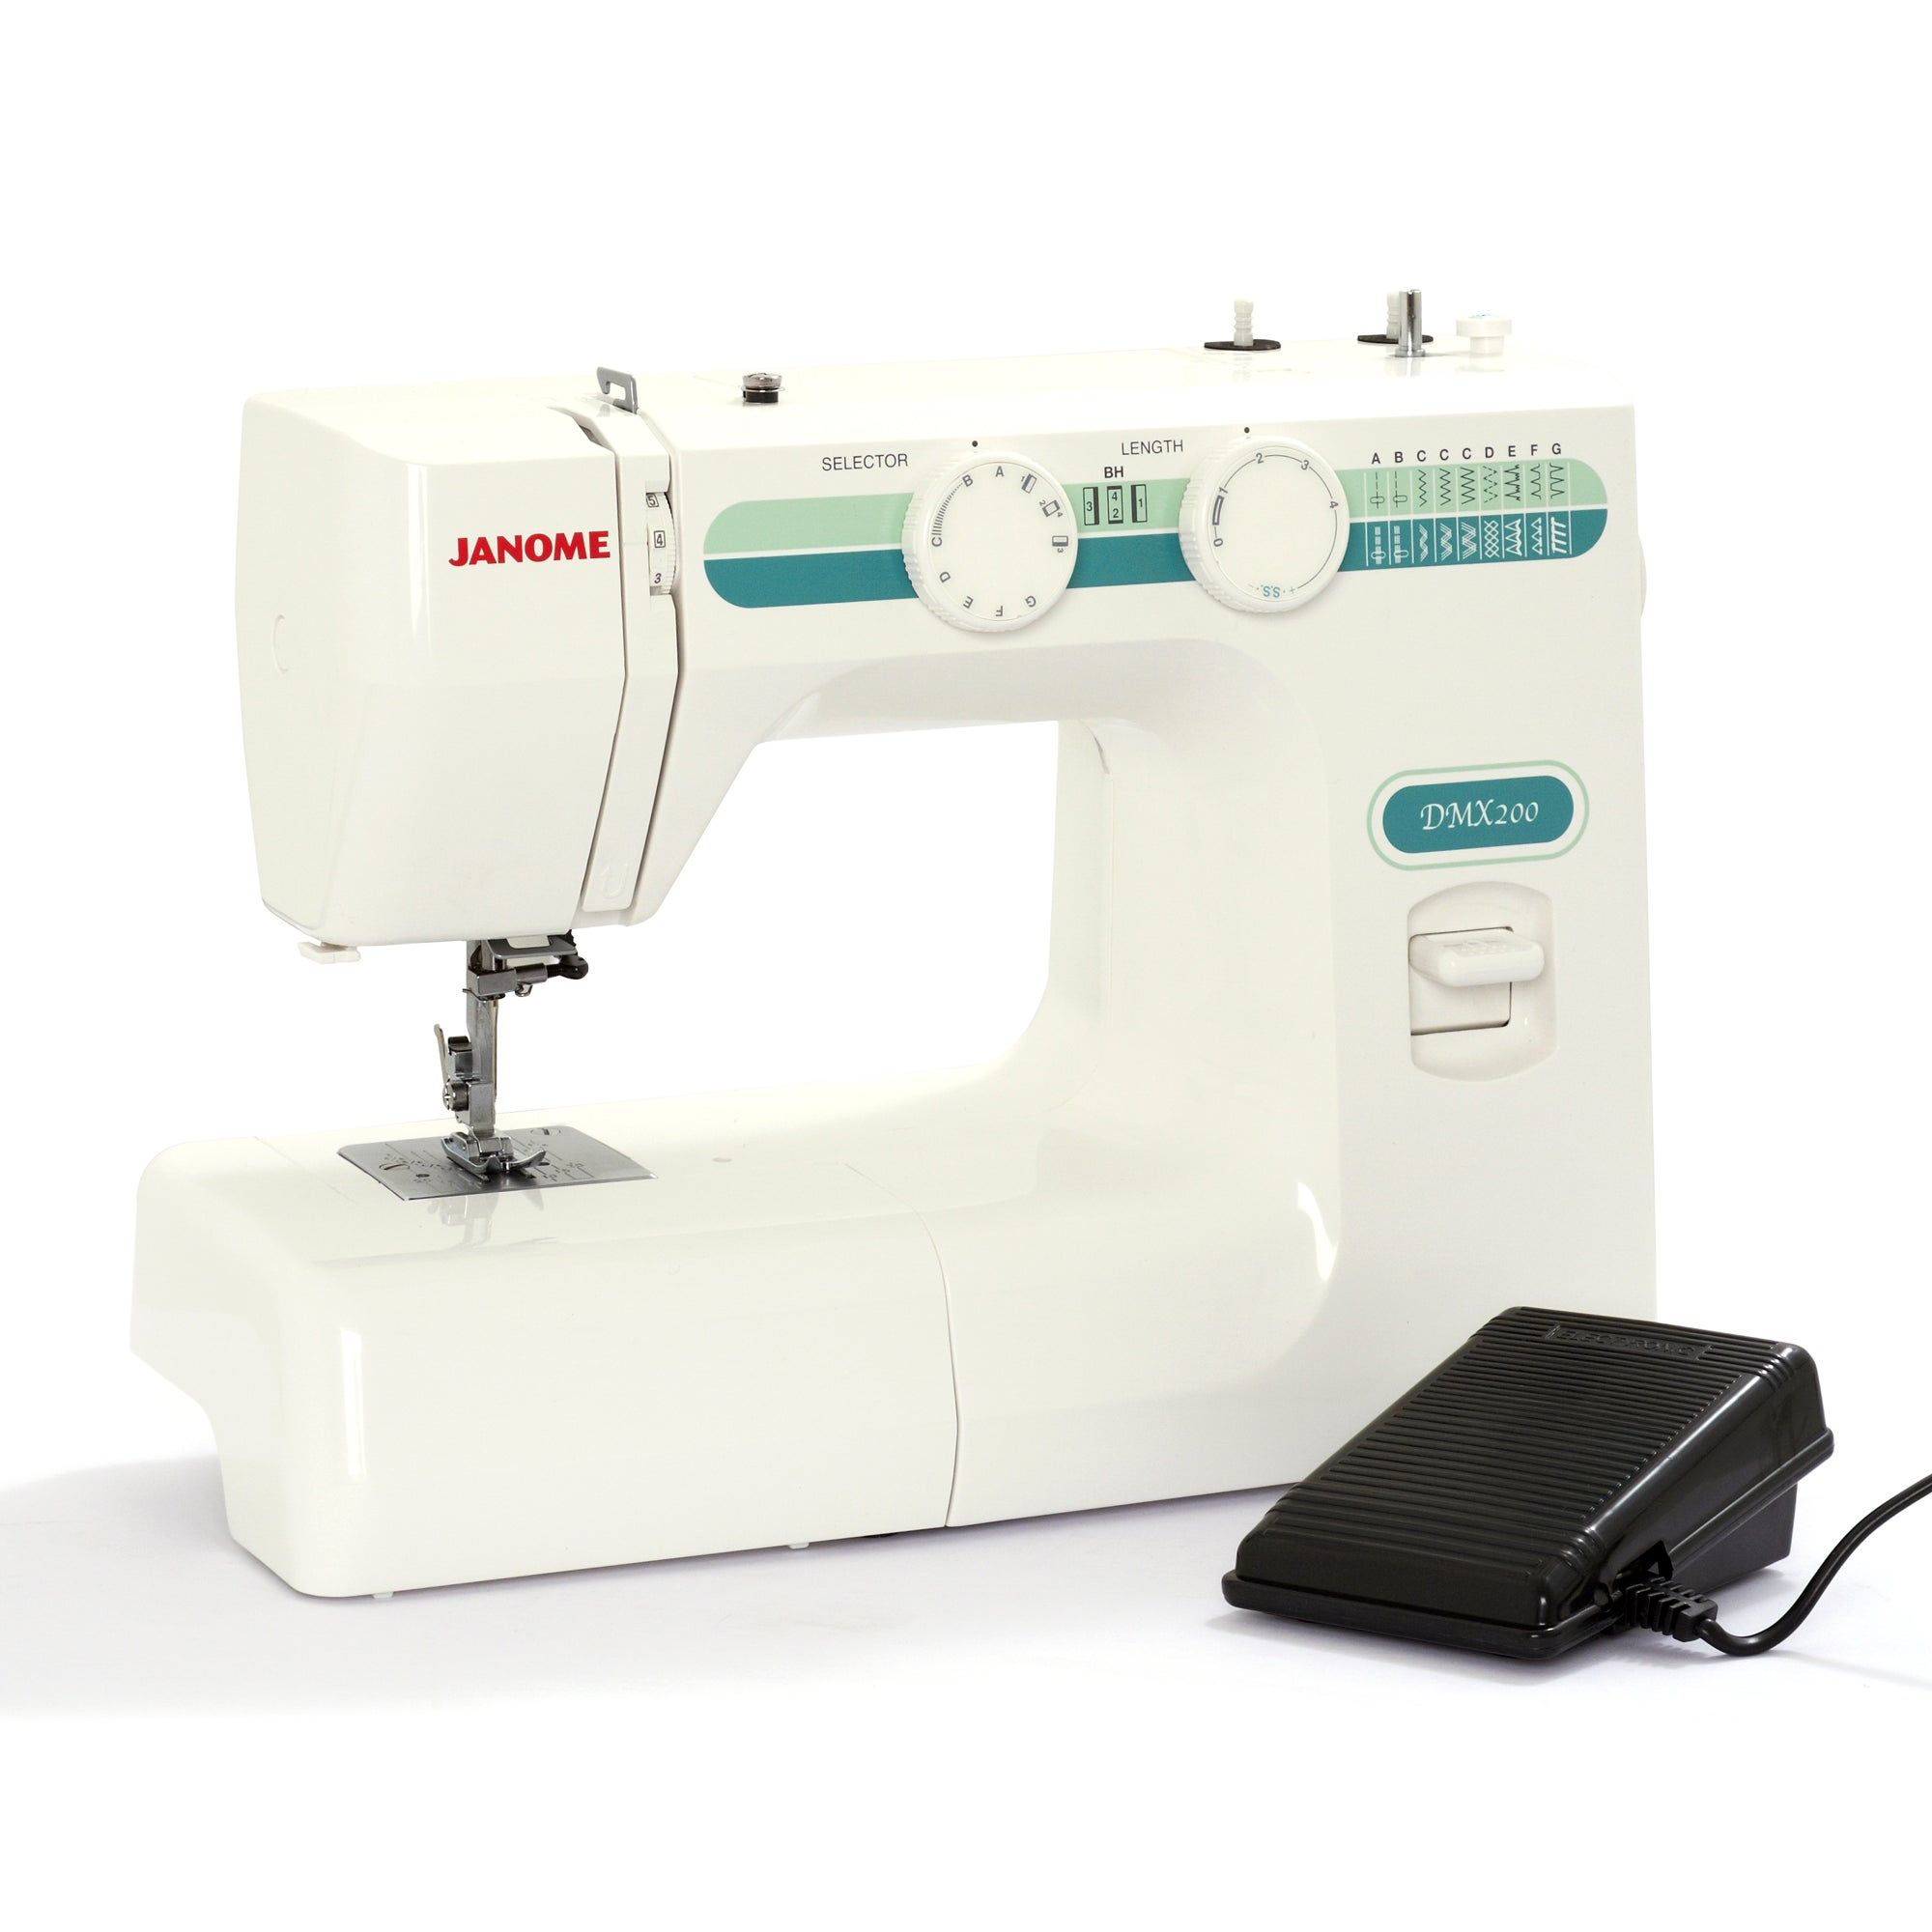 Janome DMX200 Sewing Machine